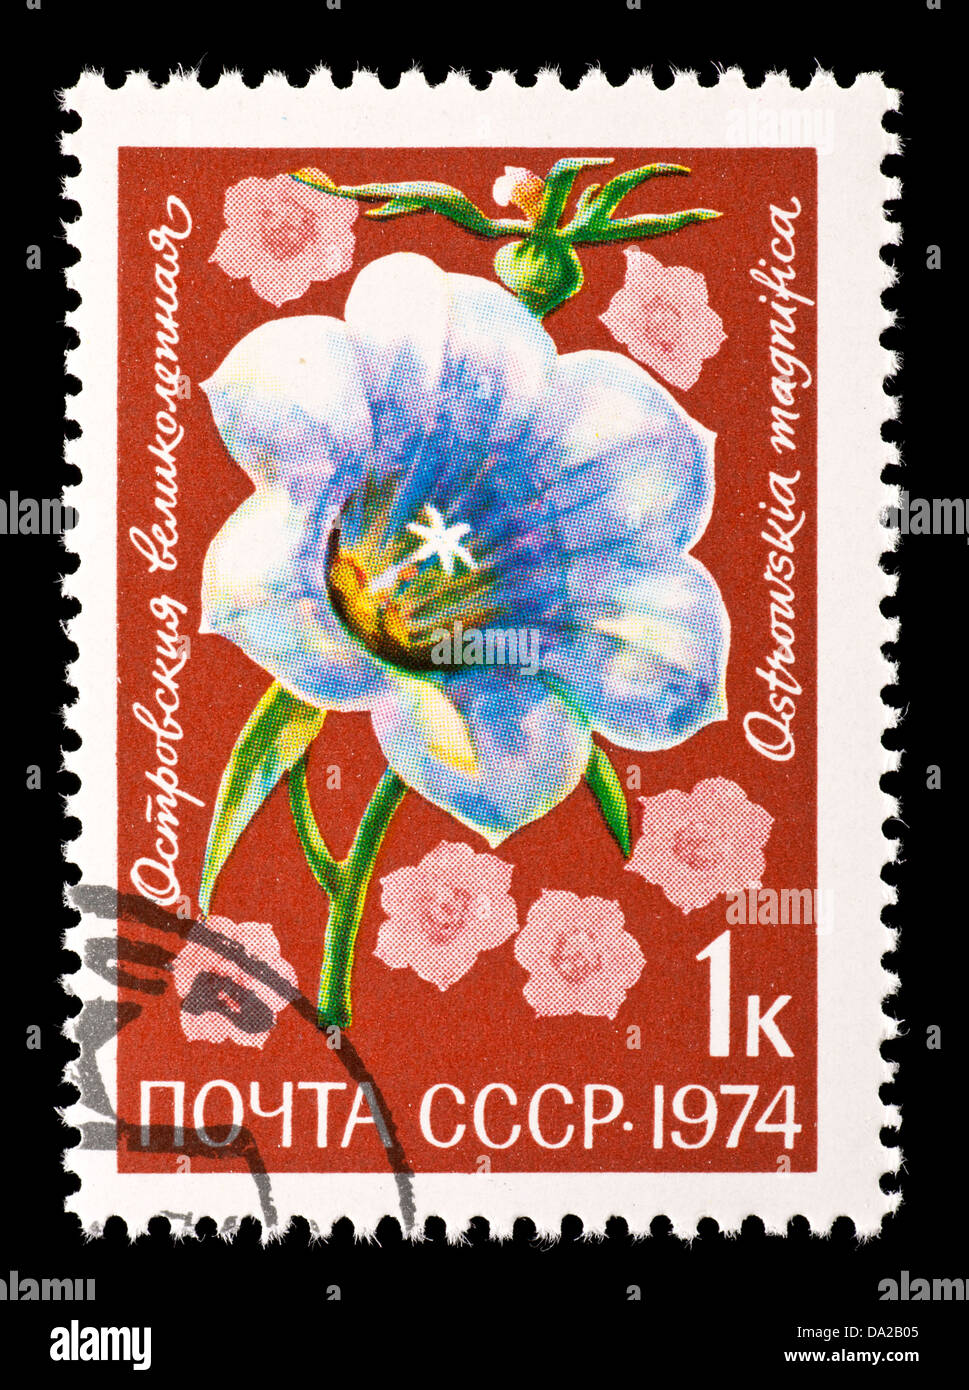 Postage stamp from the Soviet Union depicting morning glories. - Stock Image